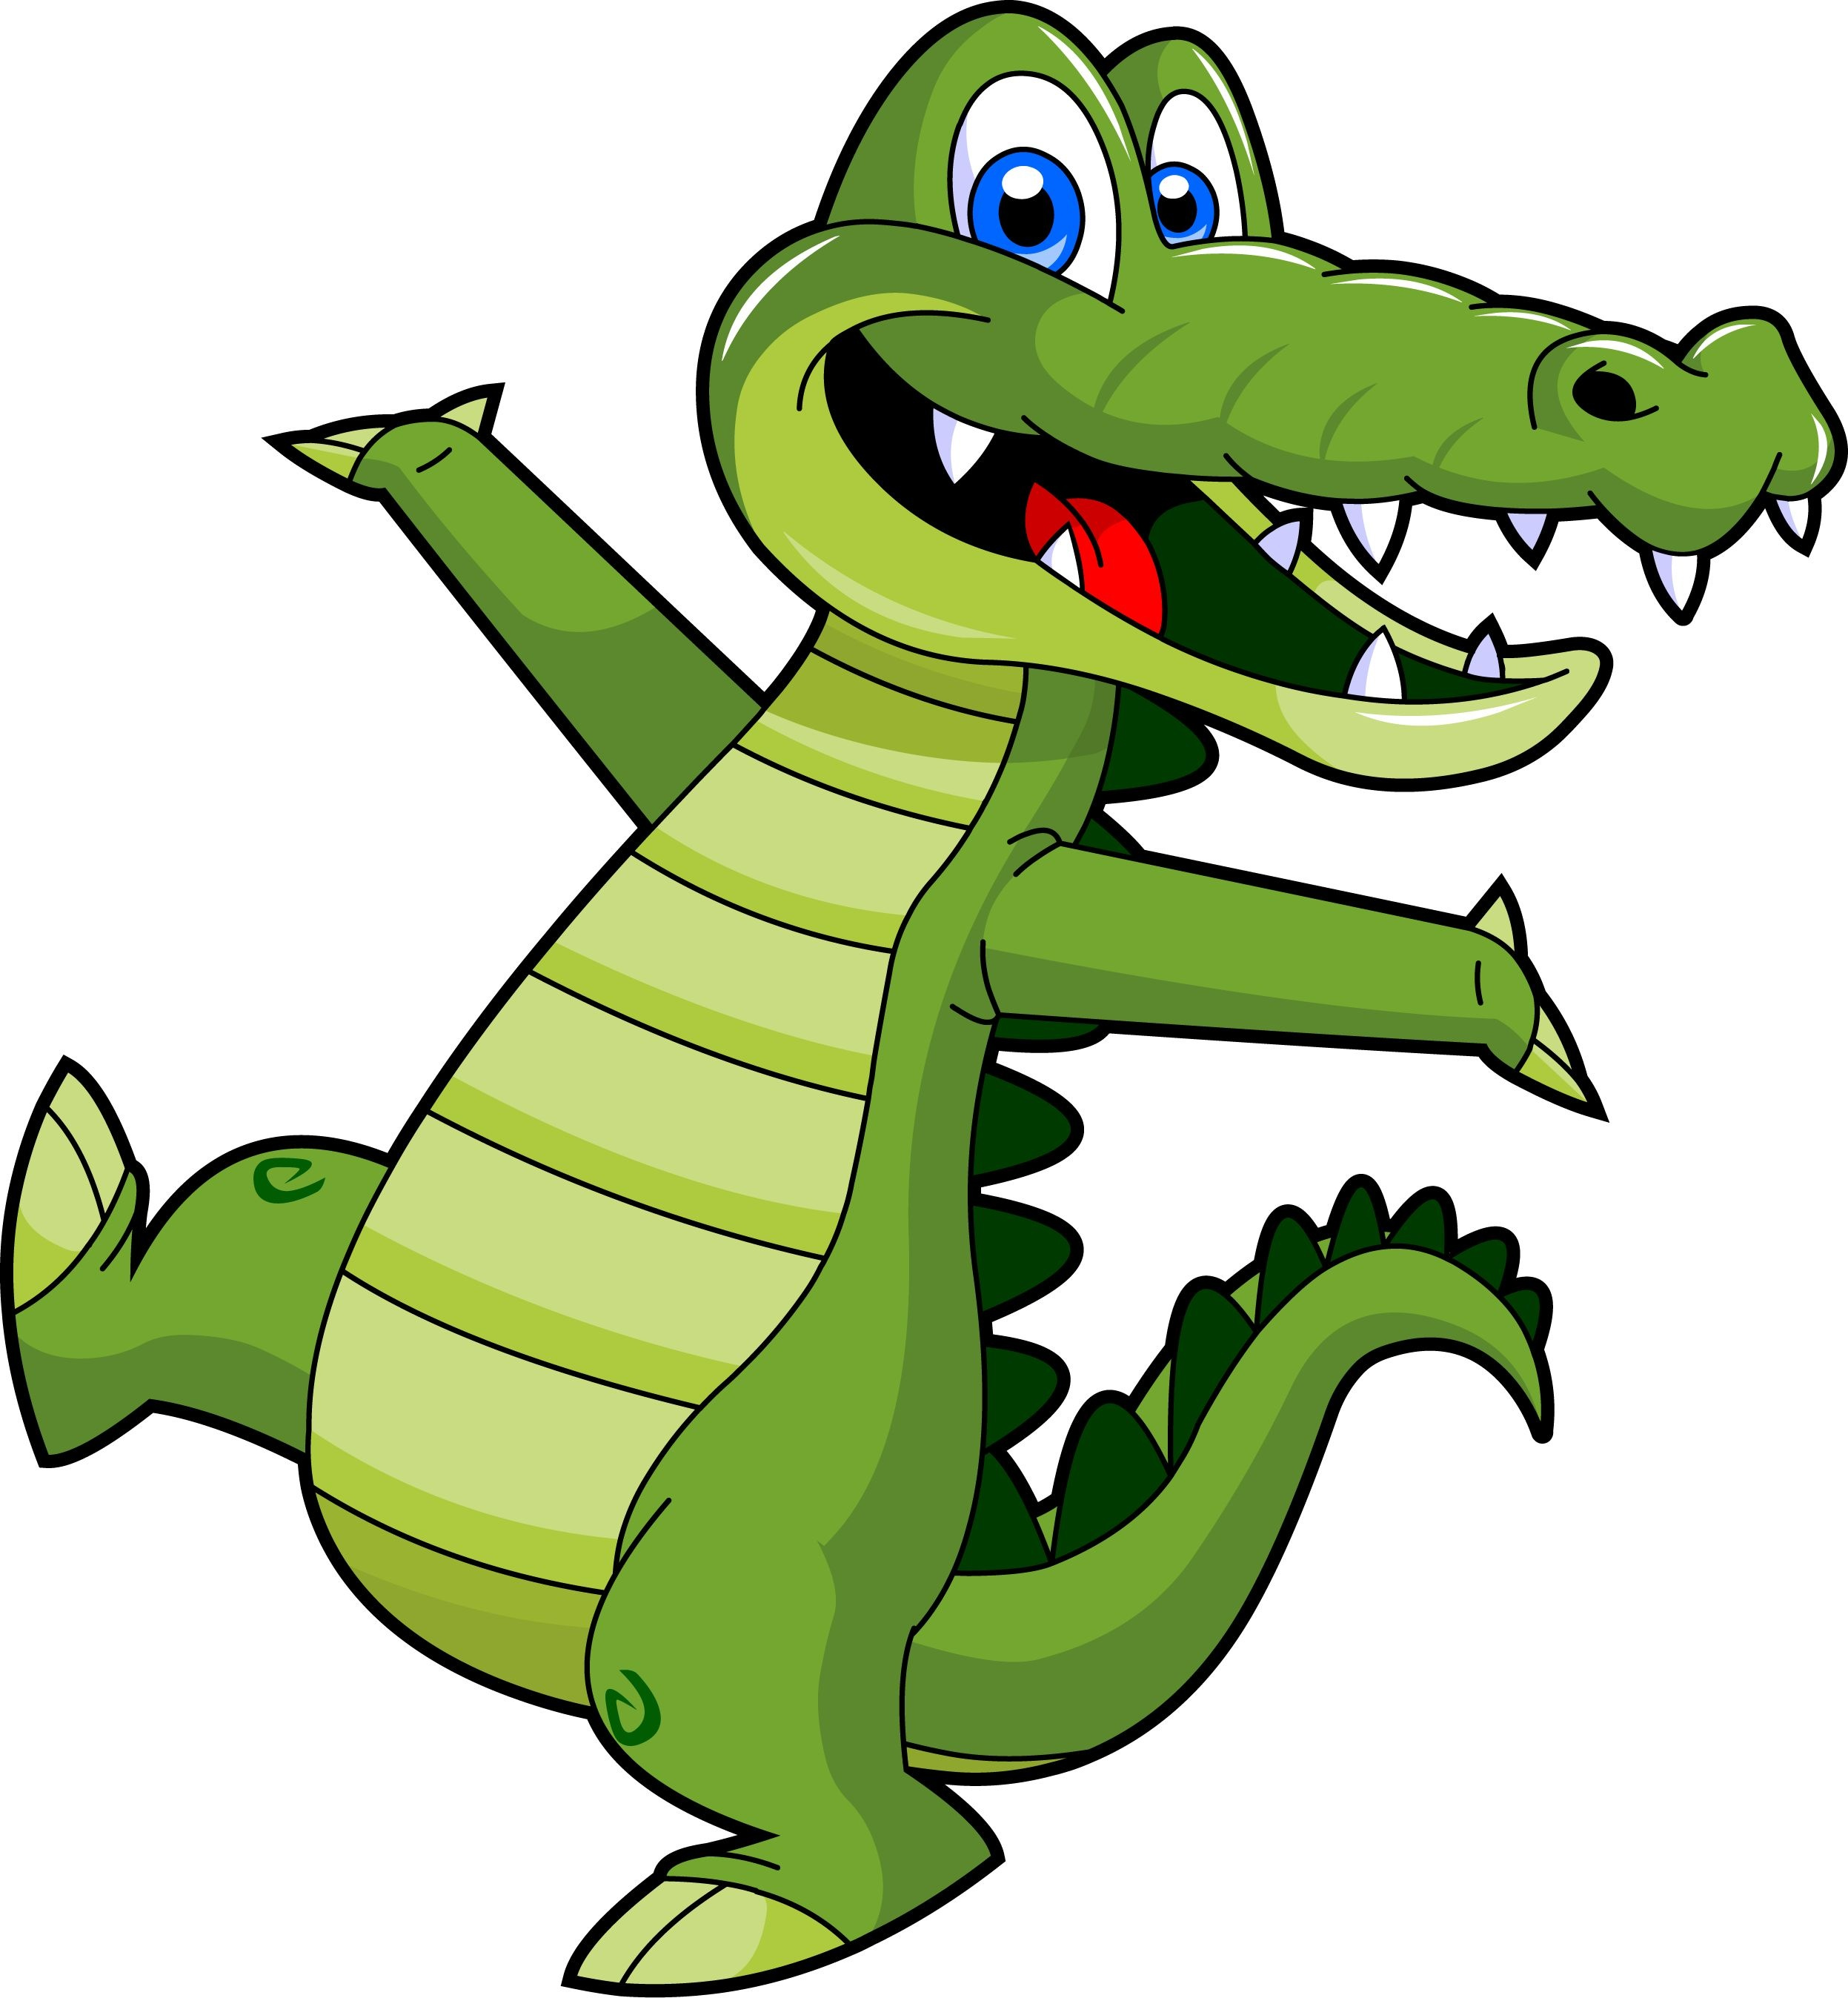 Alligator easter egg clipart clipart library stock crocodile-clip-art-alligator-clip-art.jpg | Alligators | Pinterest ... clipart library stock